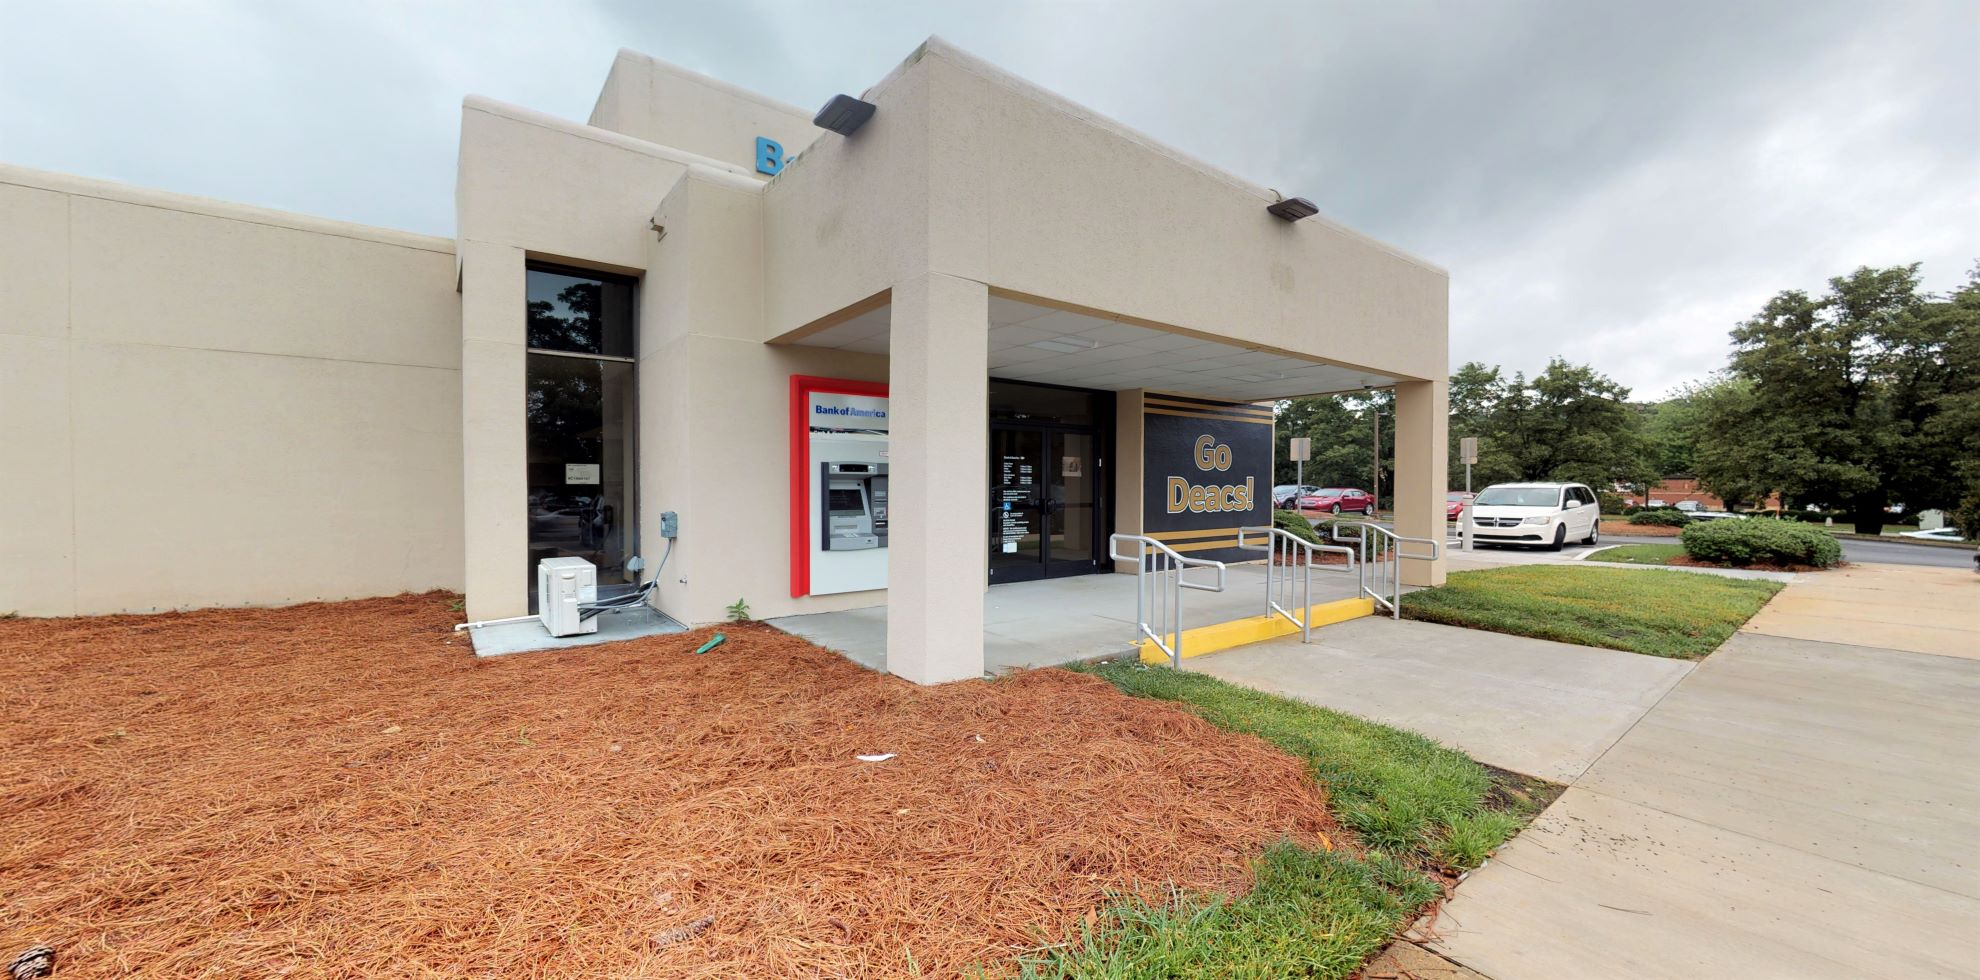 Bank of America financial center with drive-thru ATM and teller | 4001 University Pkwy, Winston Salem, NC 27106